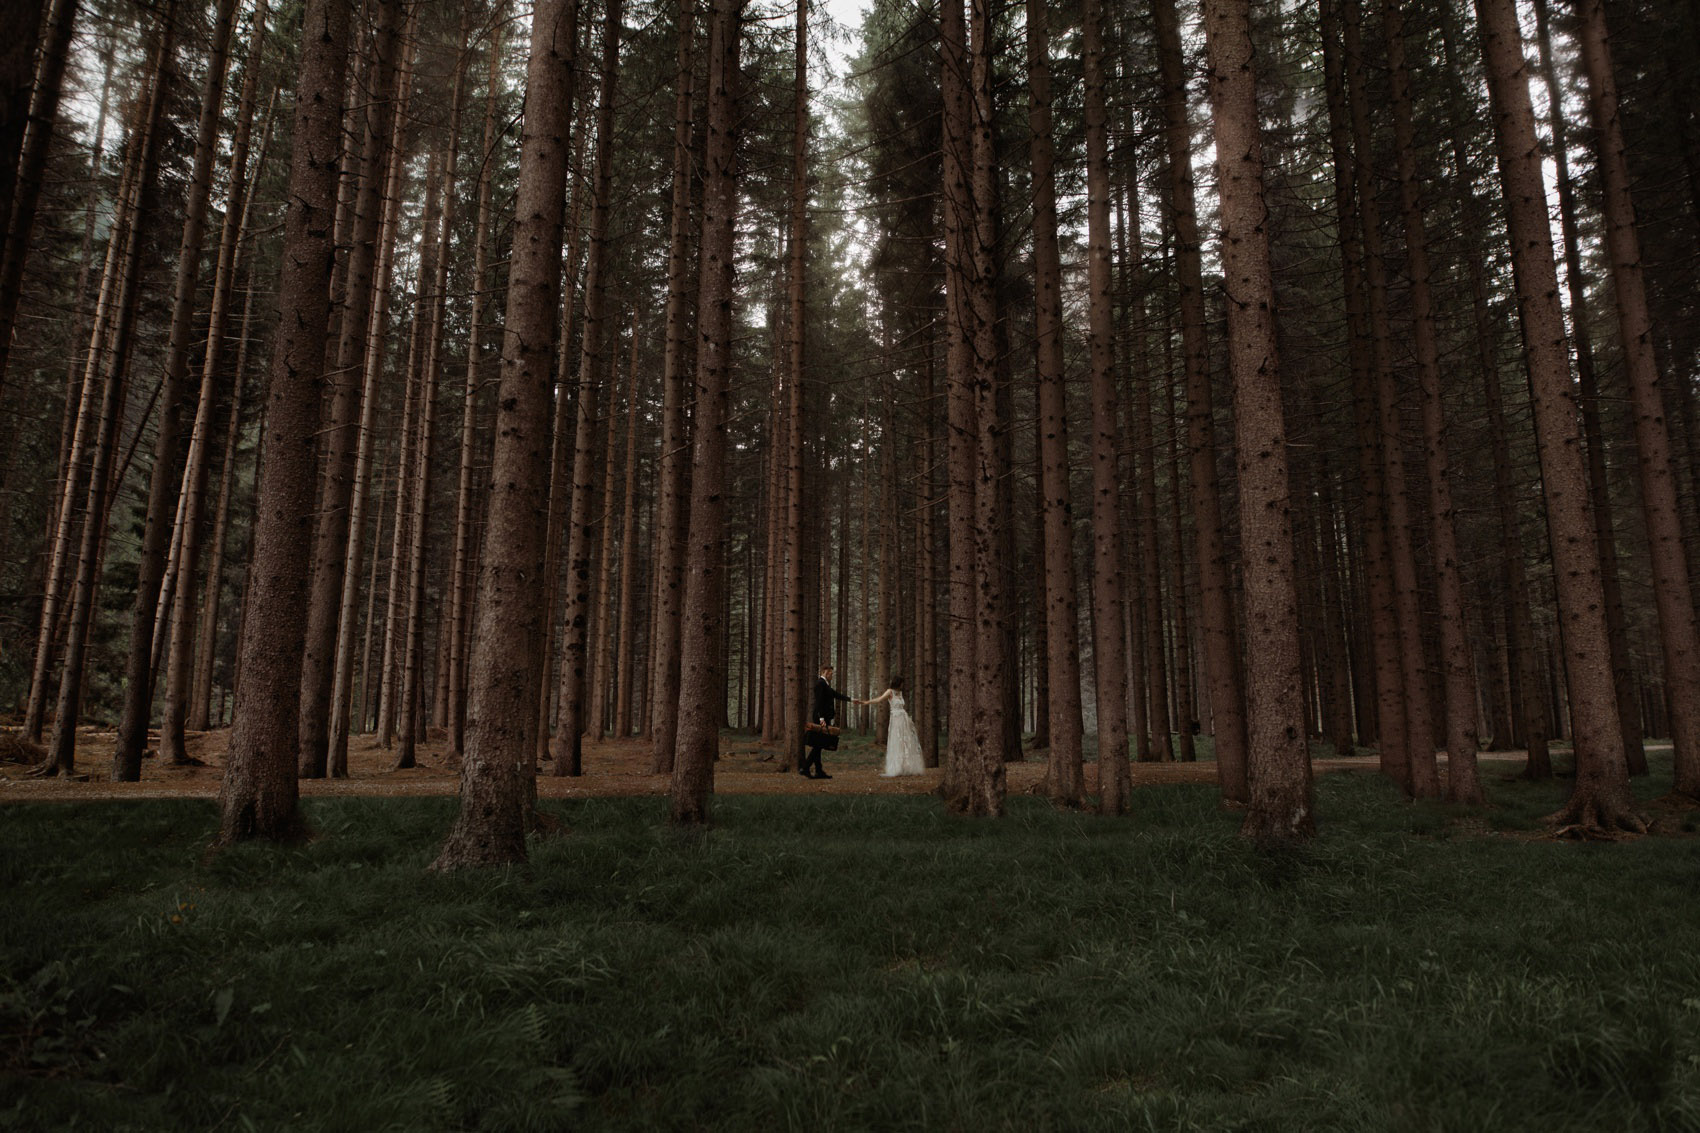 couple walking between trees